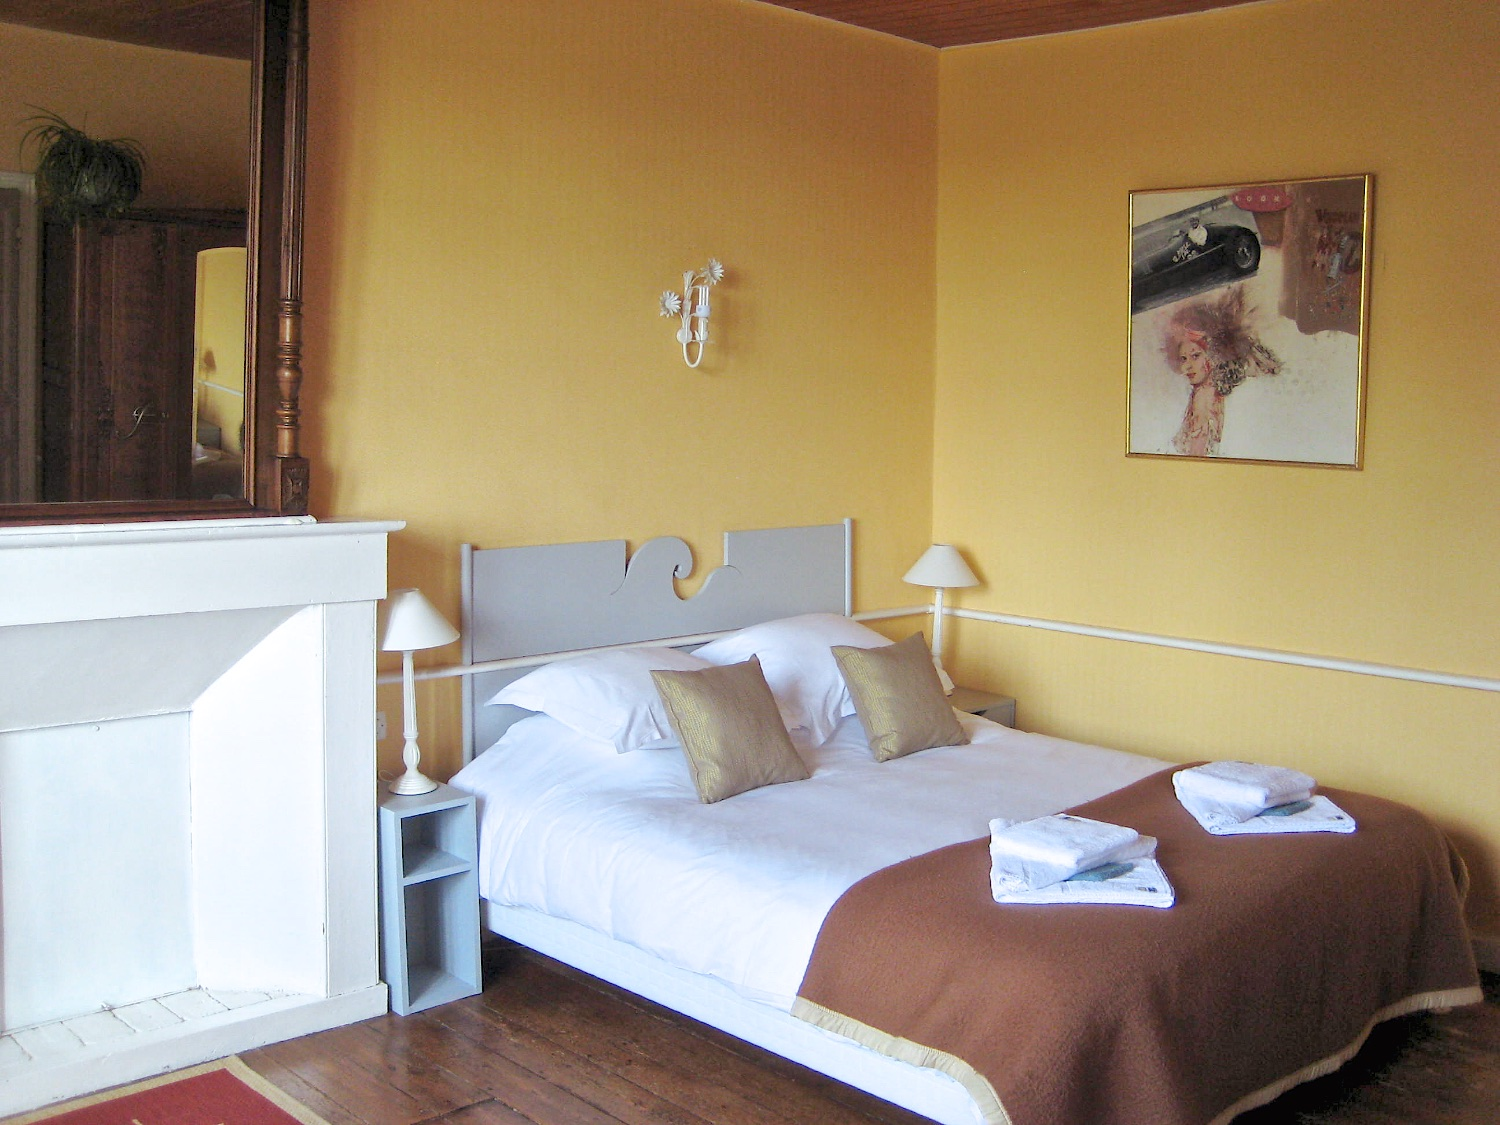 La chambre jaune lan caradec for Decoration maison jaune